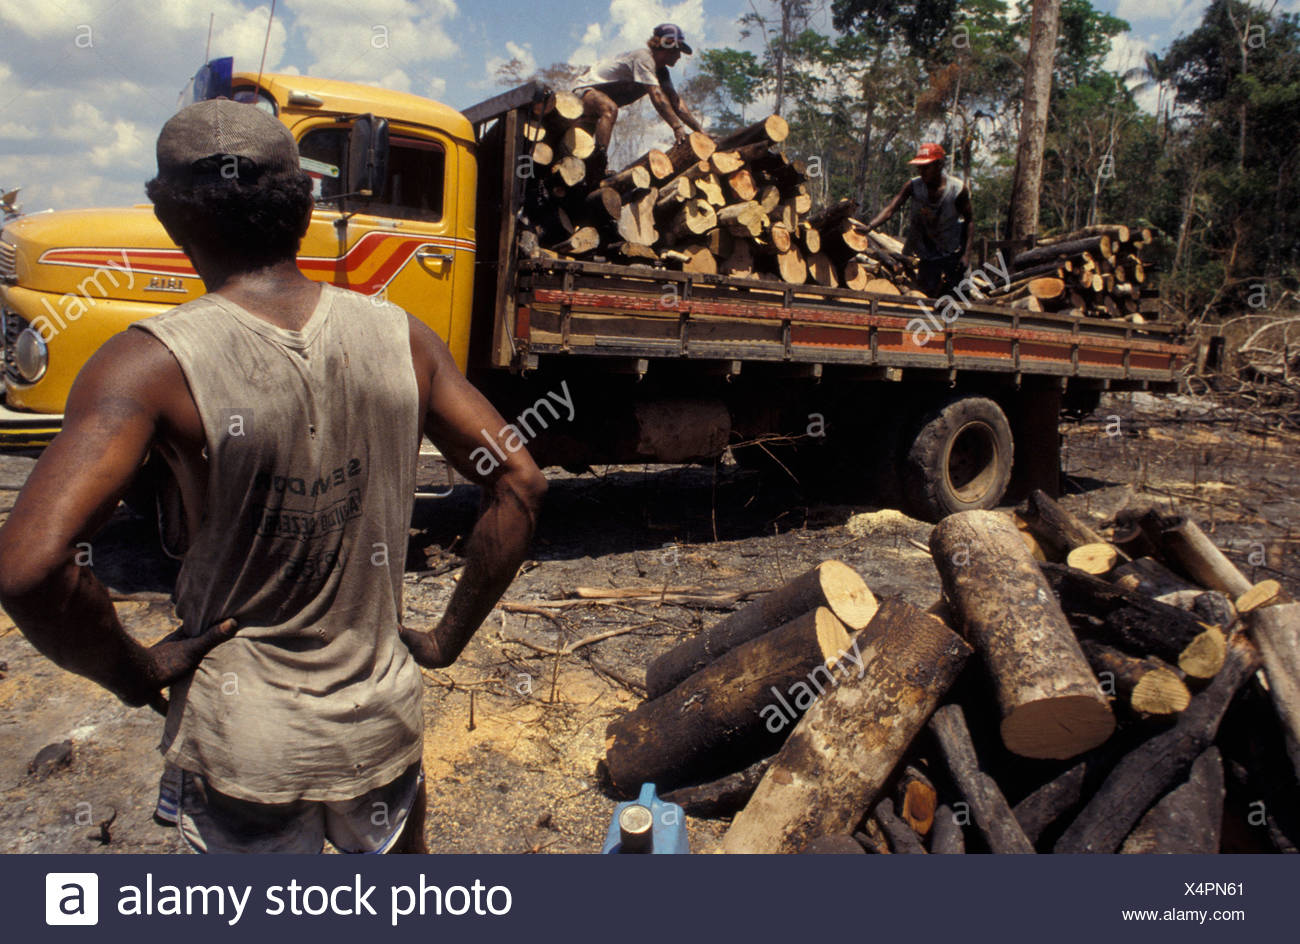 logging truck rainforest stockfotos logging truck rainforest bilder alamy. Black Bedroom Furniture Sets. Home Design Ideas